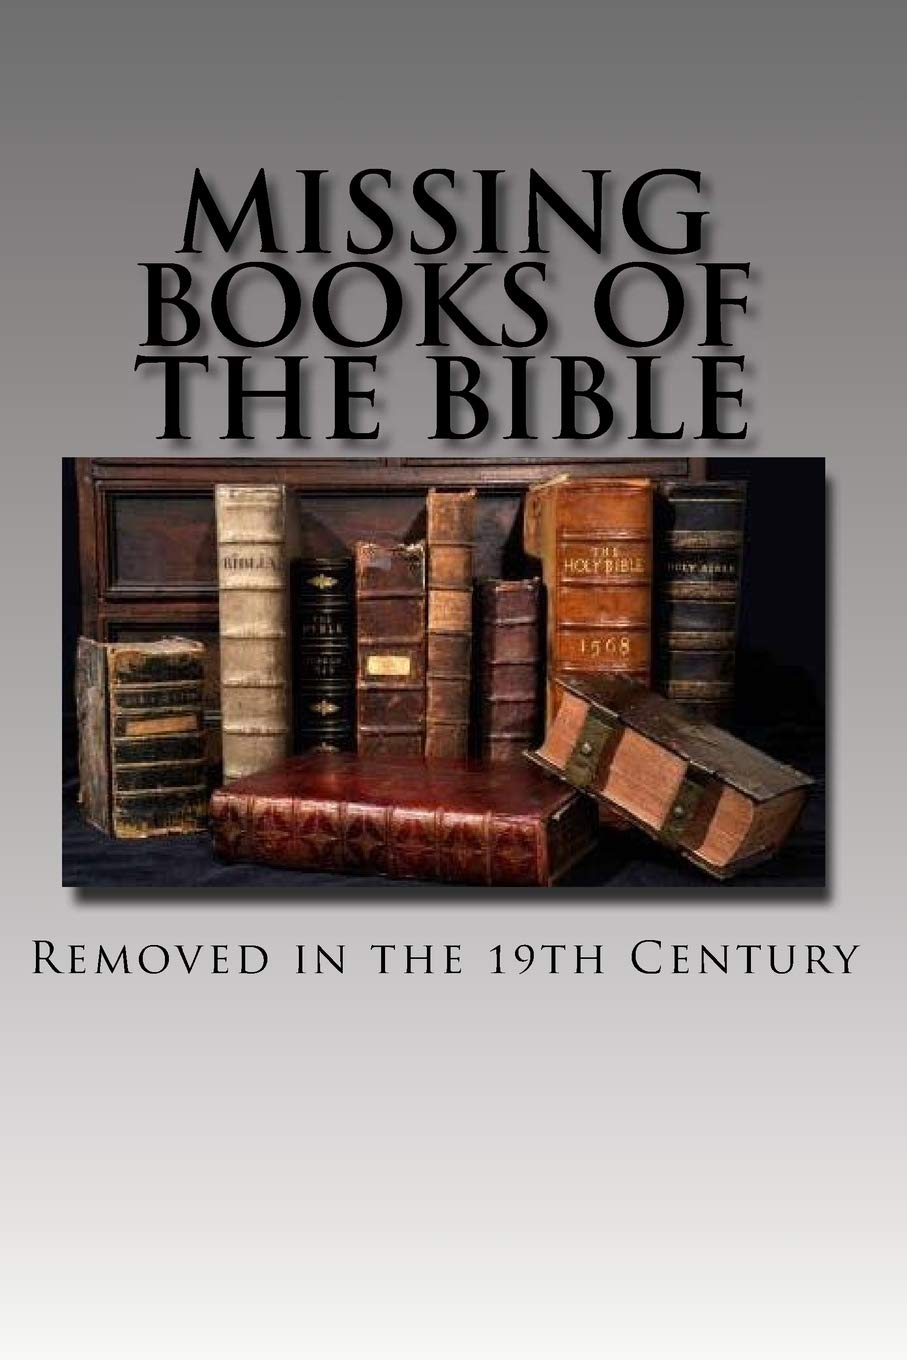 Missing Books of the Bible: Removed in the 19th Century